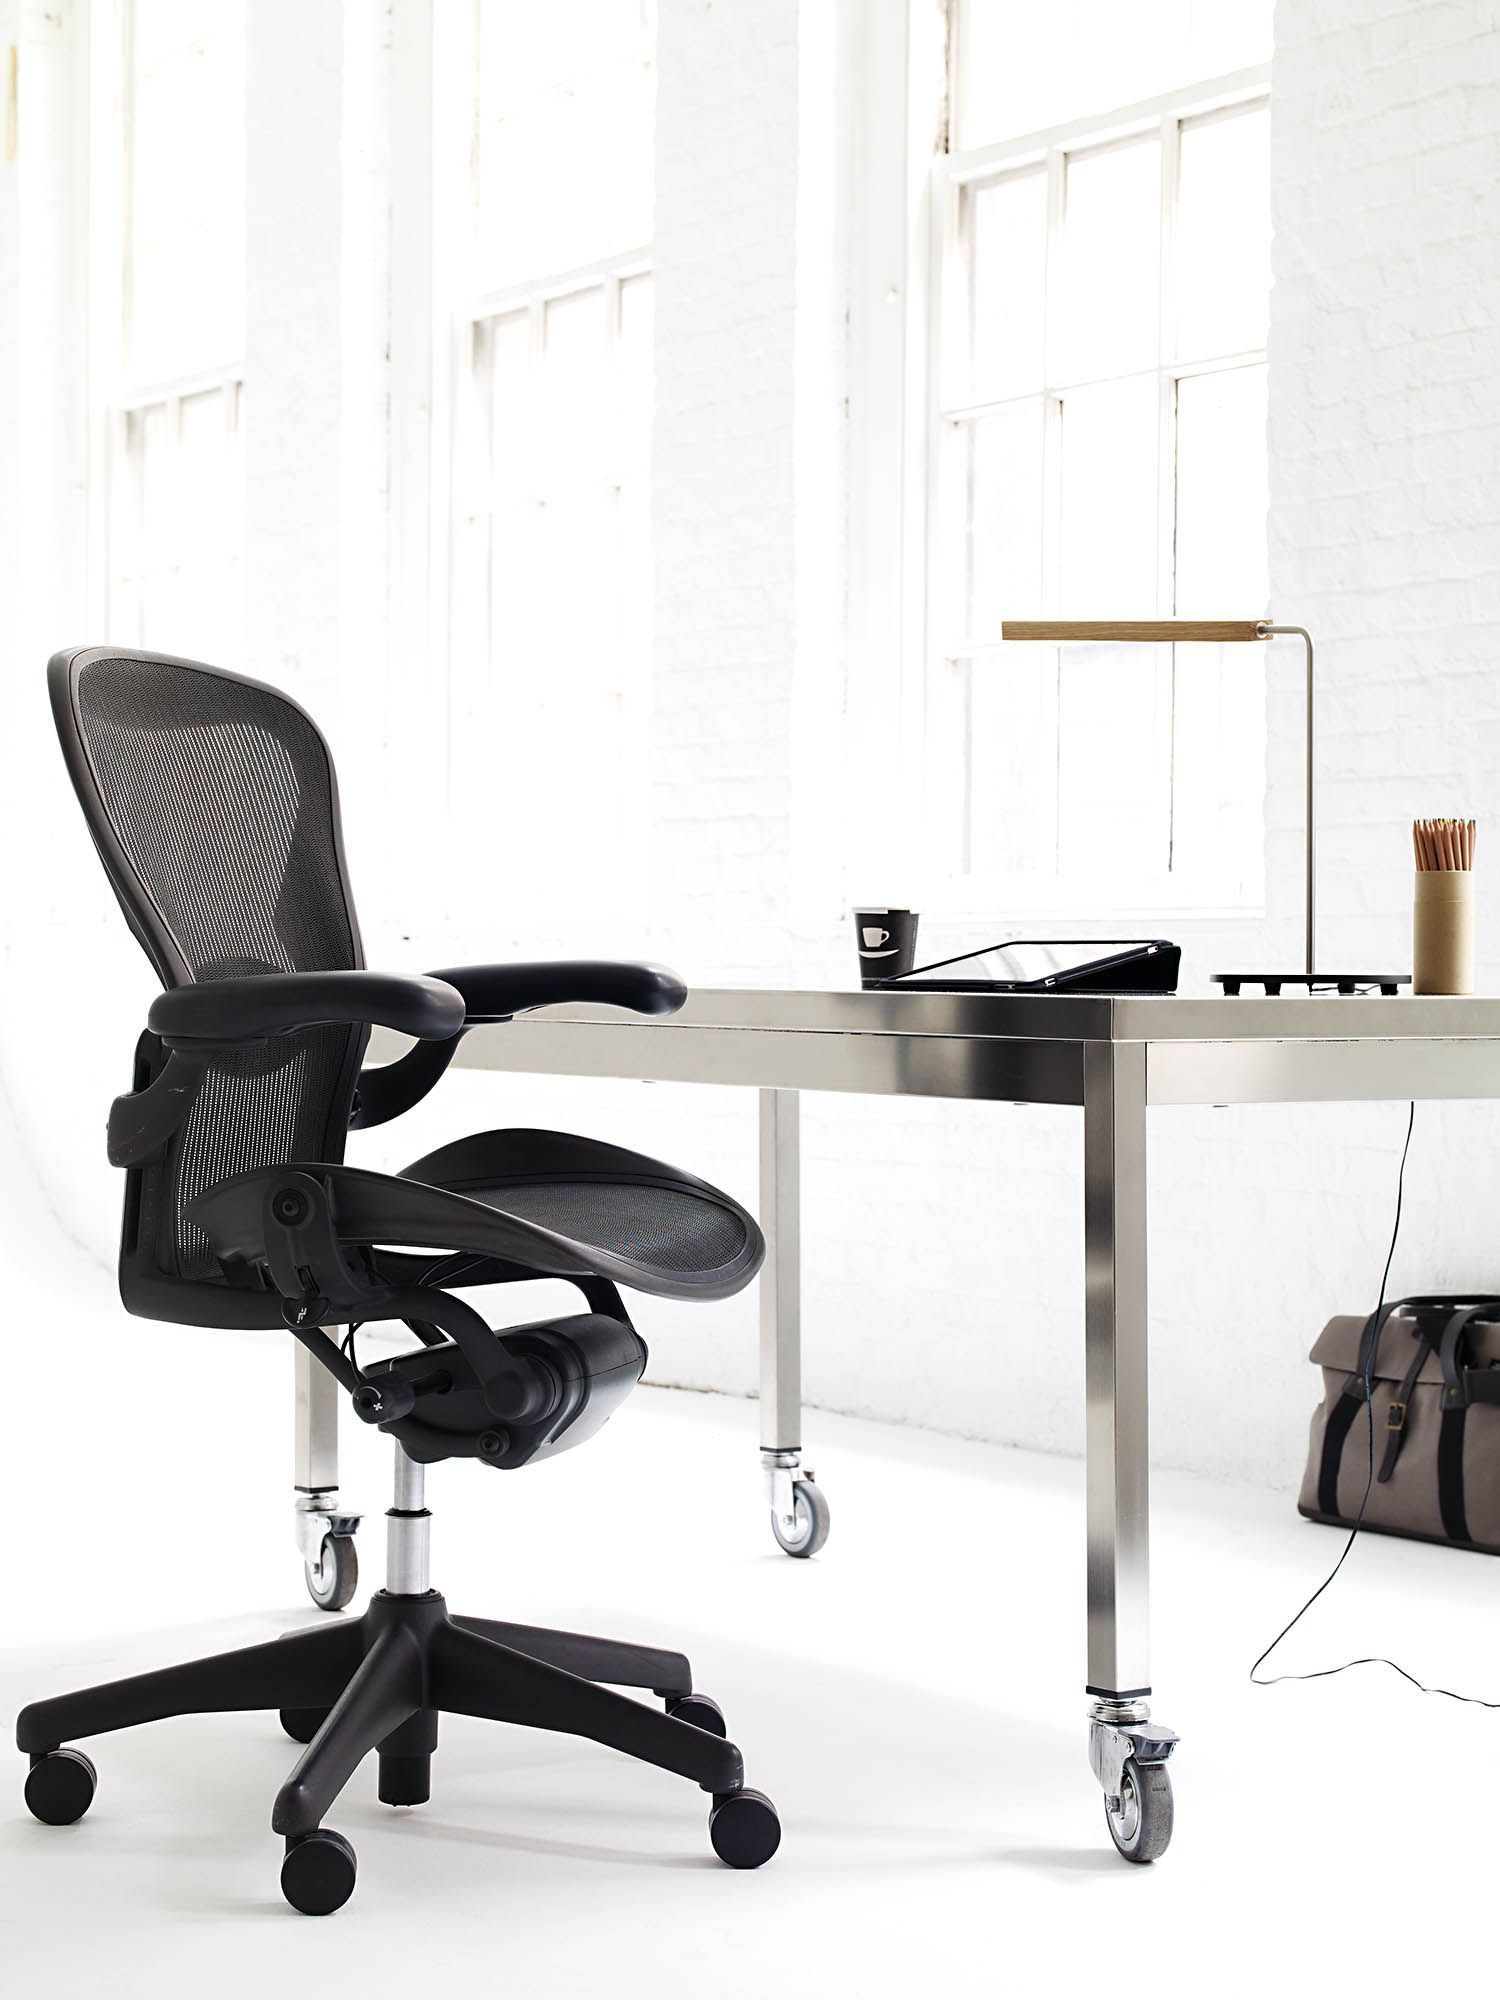 Aeron® Chair - Lumbar Support  Designed by Don Chadwick and Bill Stumpf